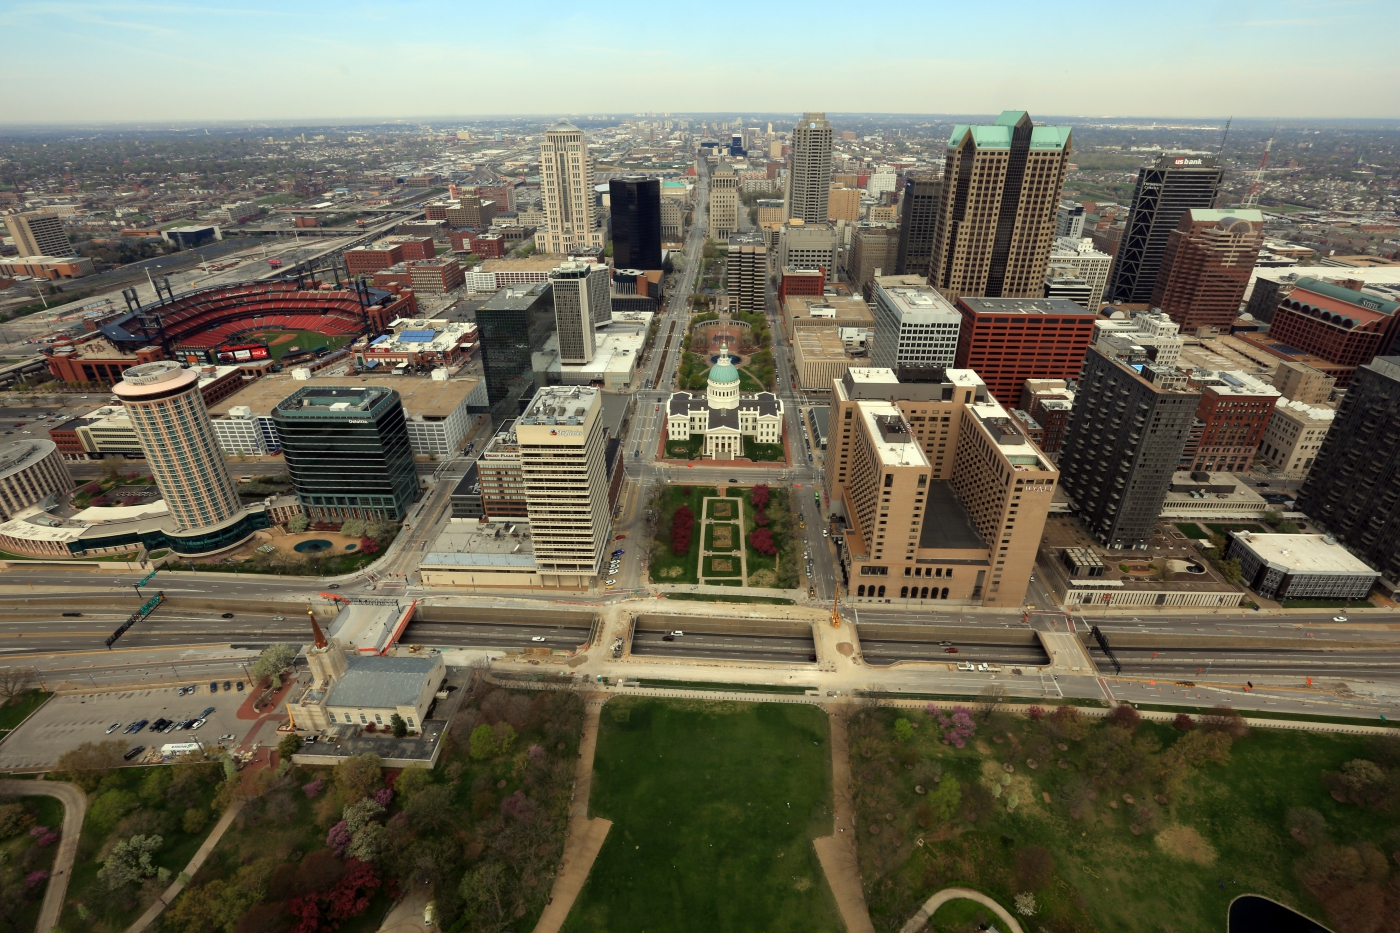 View of downtown from the top of the Gateway Arch.